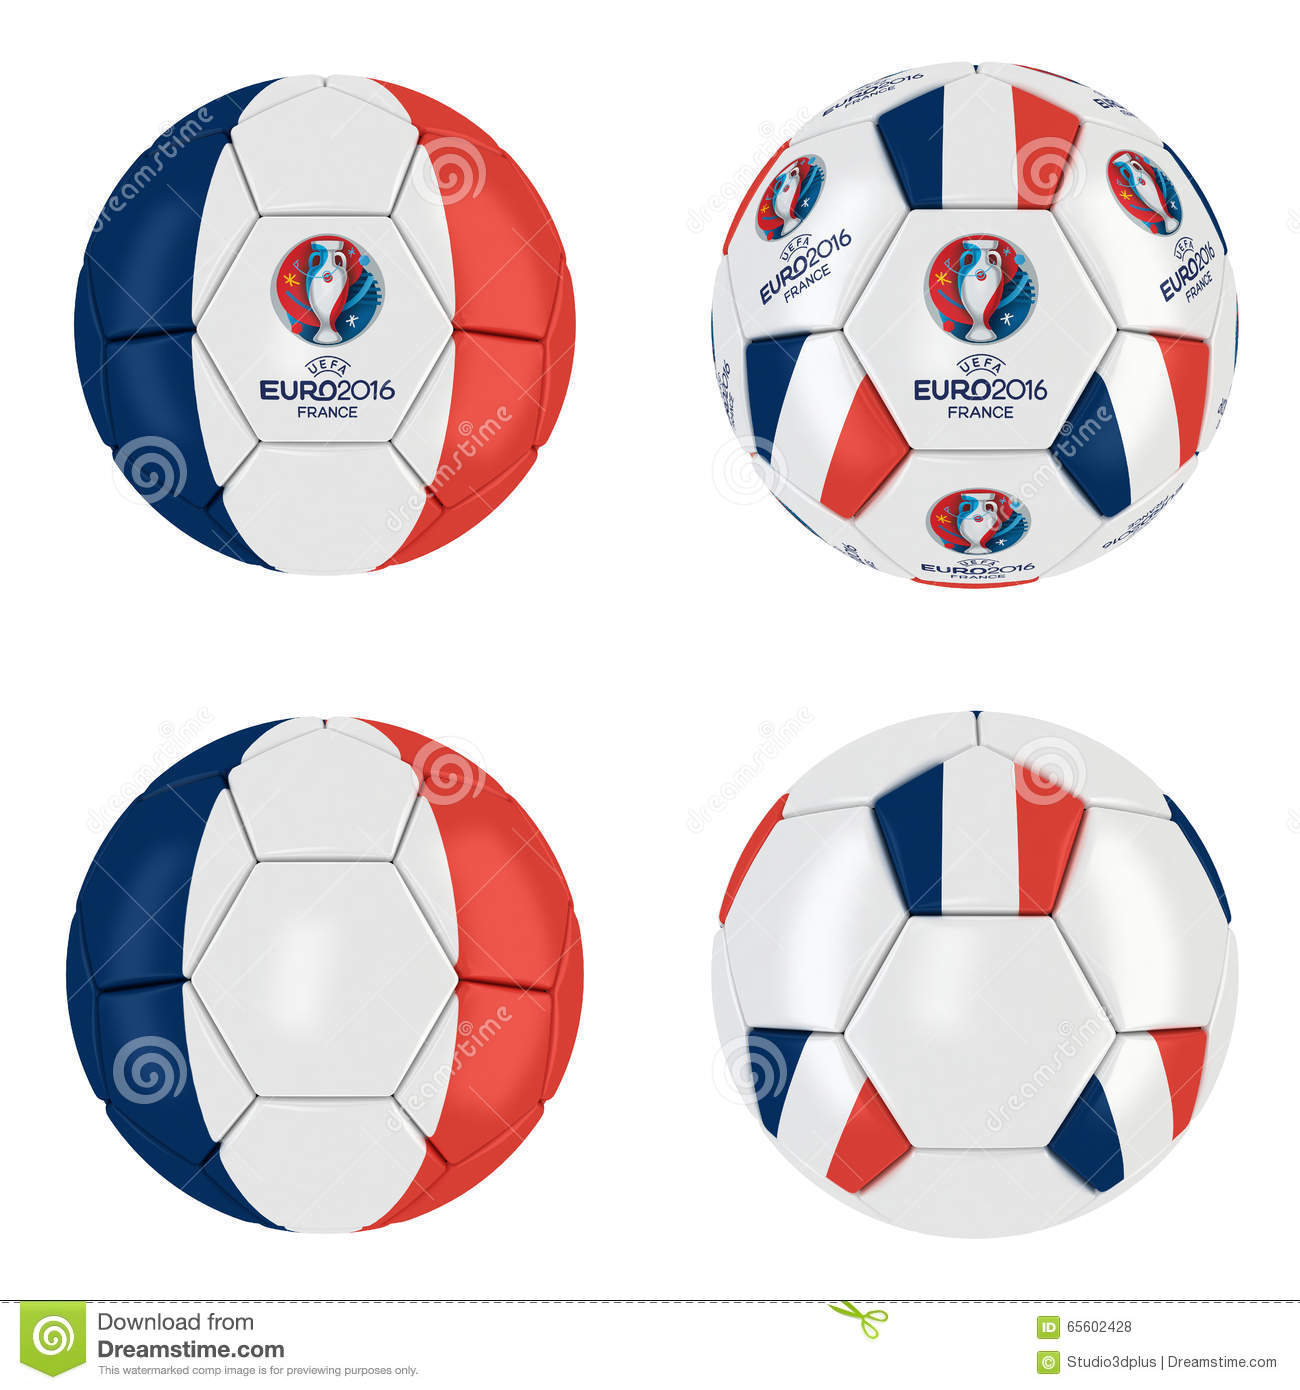 uefa euro 2016 france ball collection editorial stock. Black Bedroom Furniture Sets. Home Design Ideas